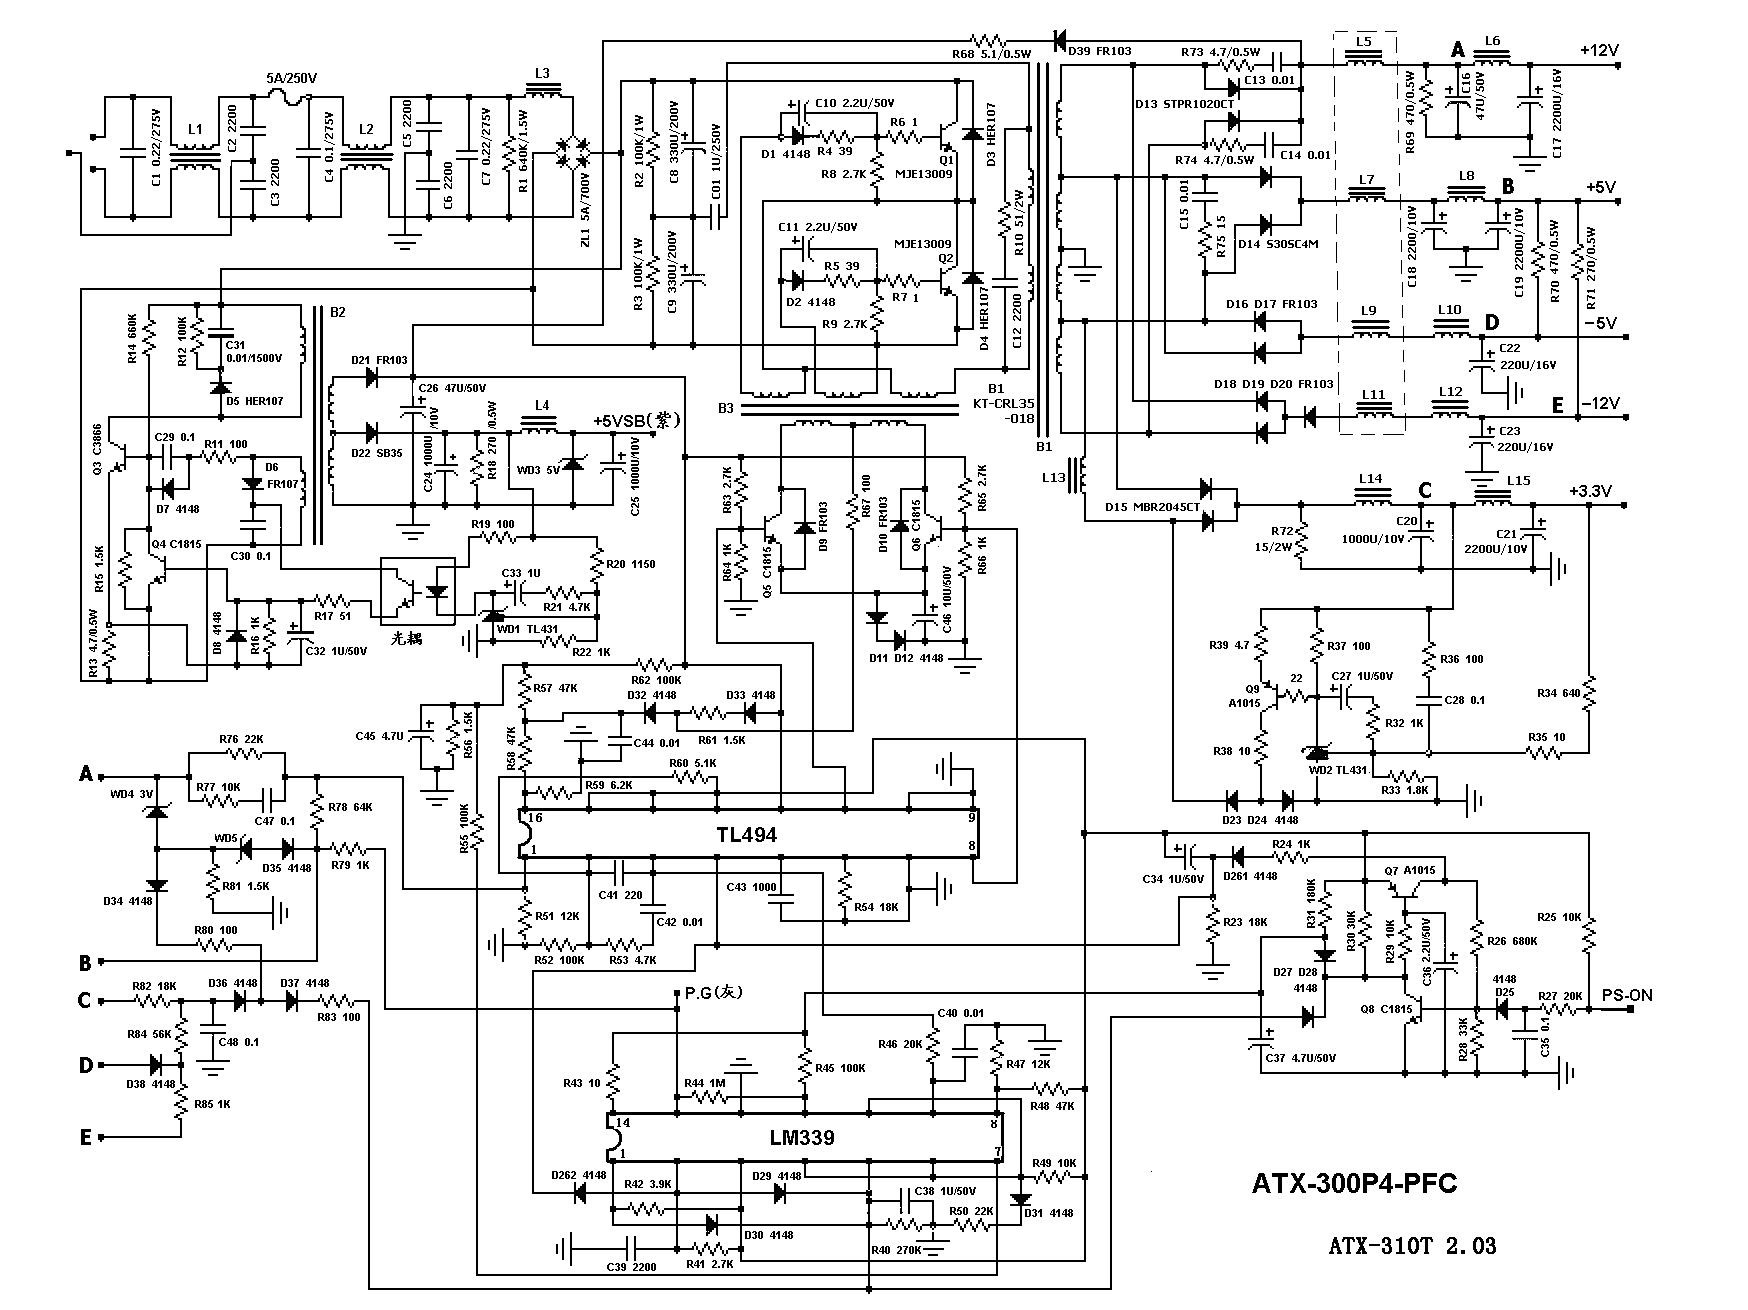 Pc Wiring Diagram | Schematic Diagram - Computer Power Supply Wiring Diagram